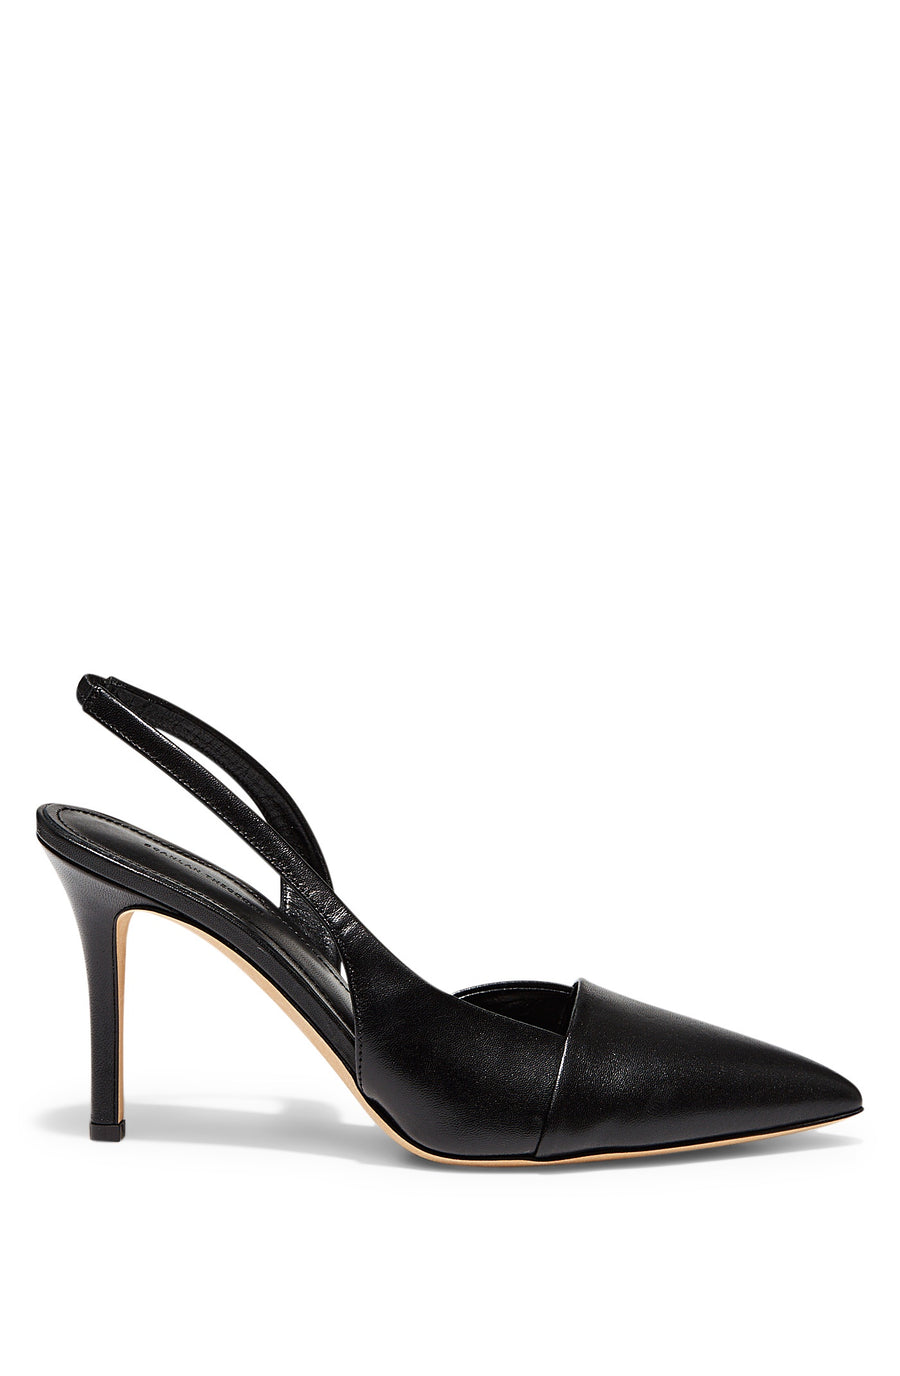 Slingback Pump 9, high heeled slingback, pointed toe, folded edge cap design, leather lining and leather sole, color Nero